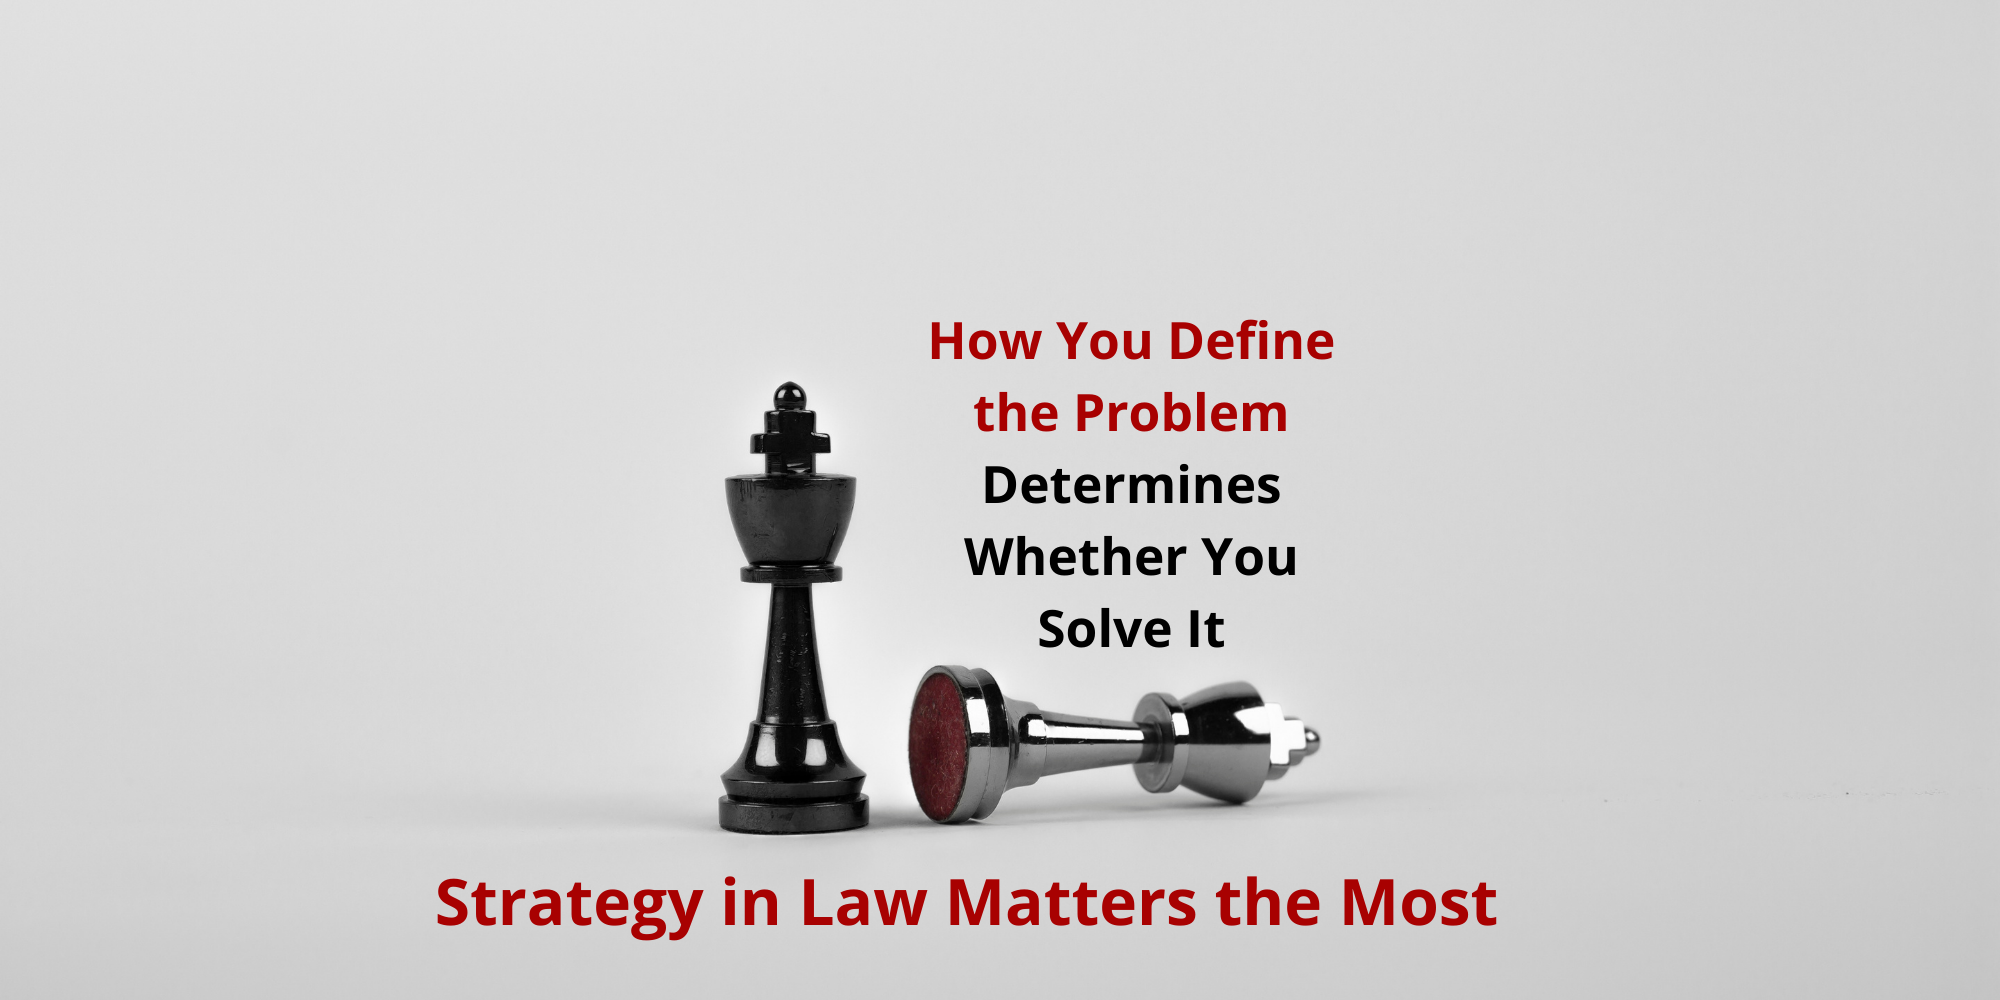 Strategy in Law Matters the Most